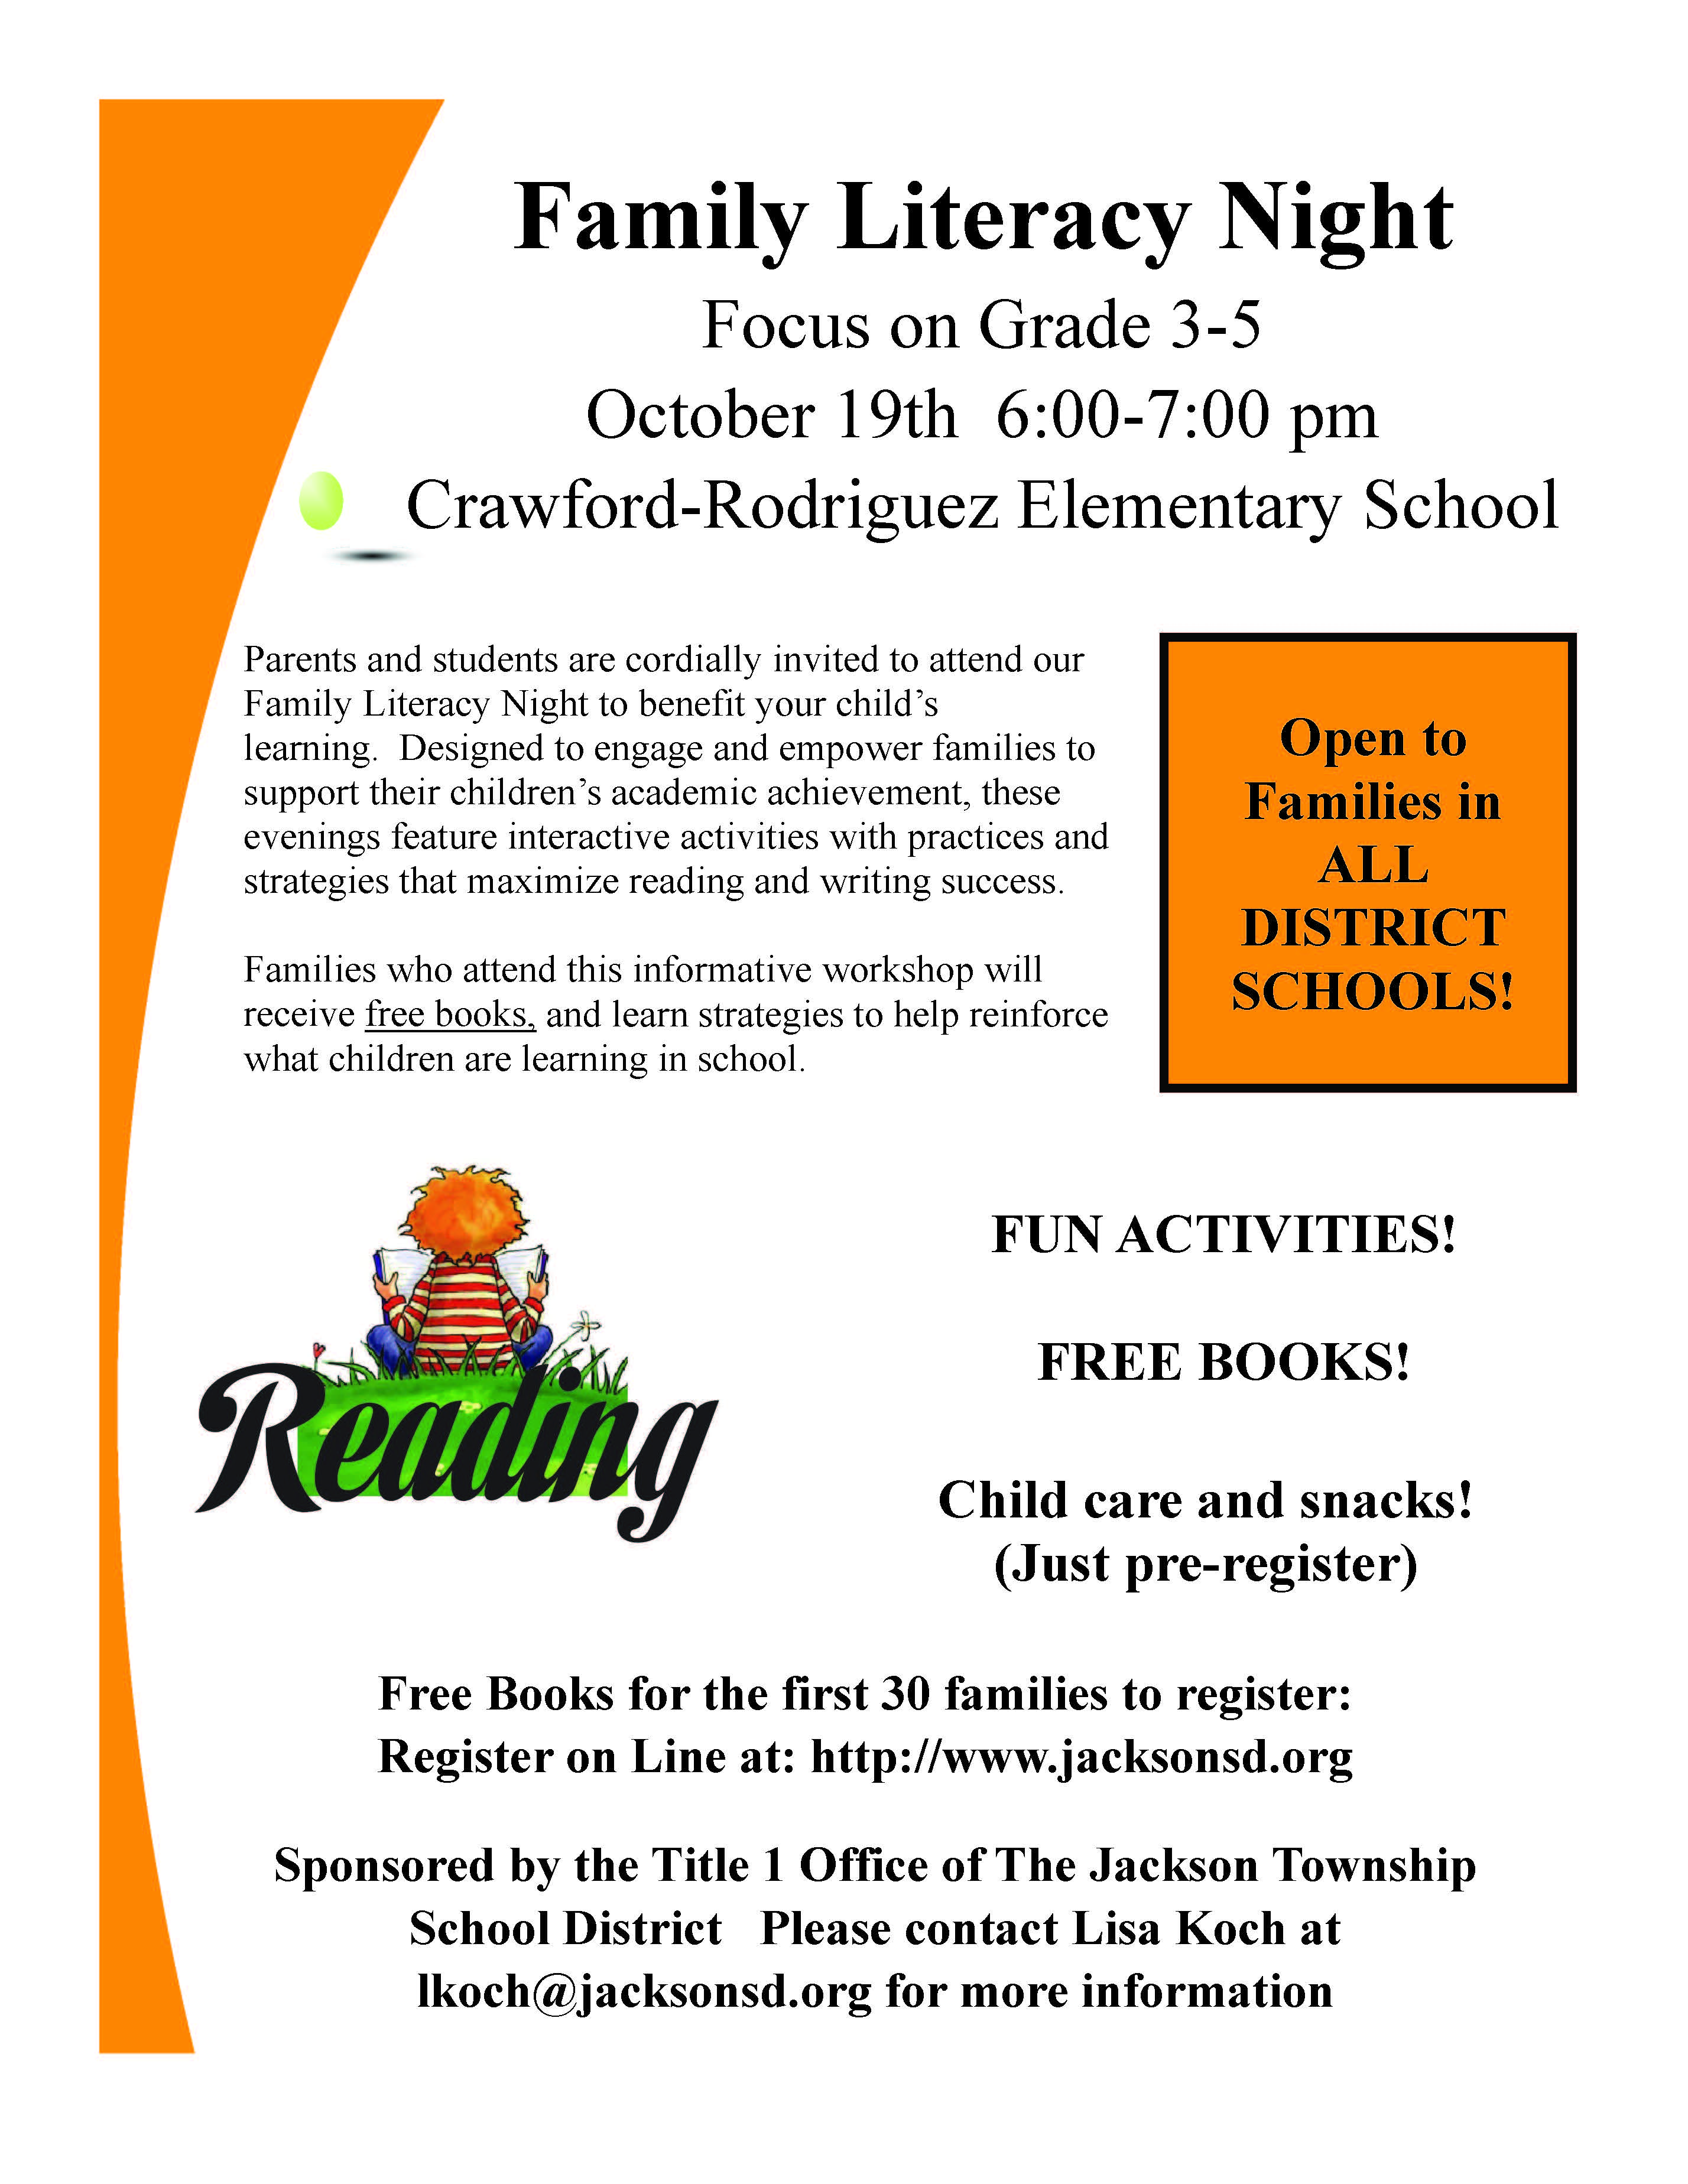 Family Literacy - Oct. 19th